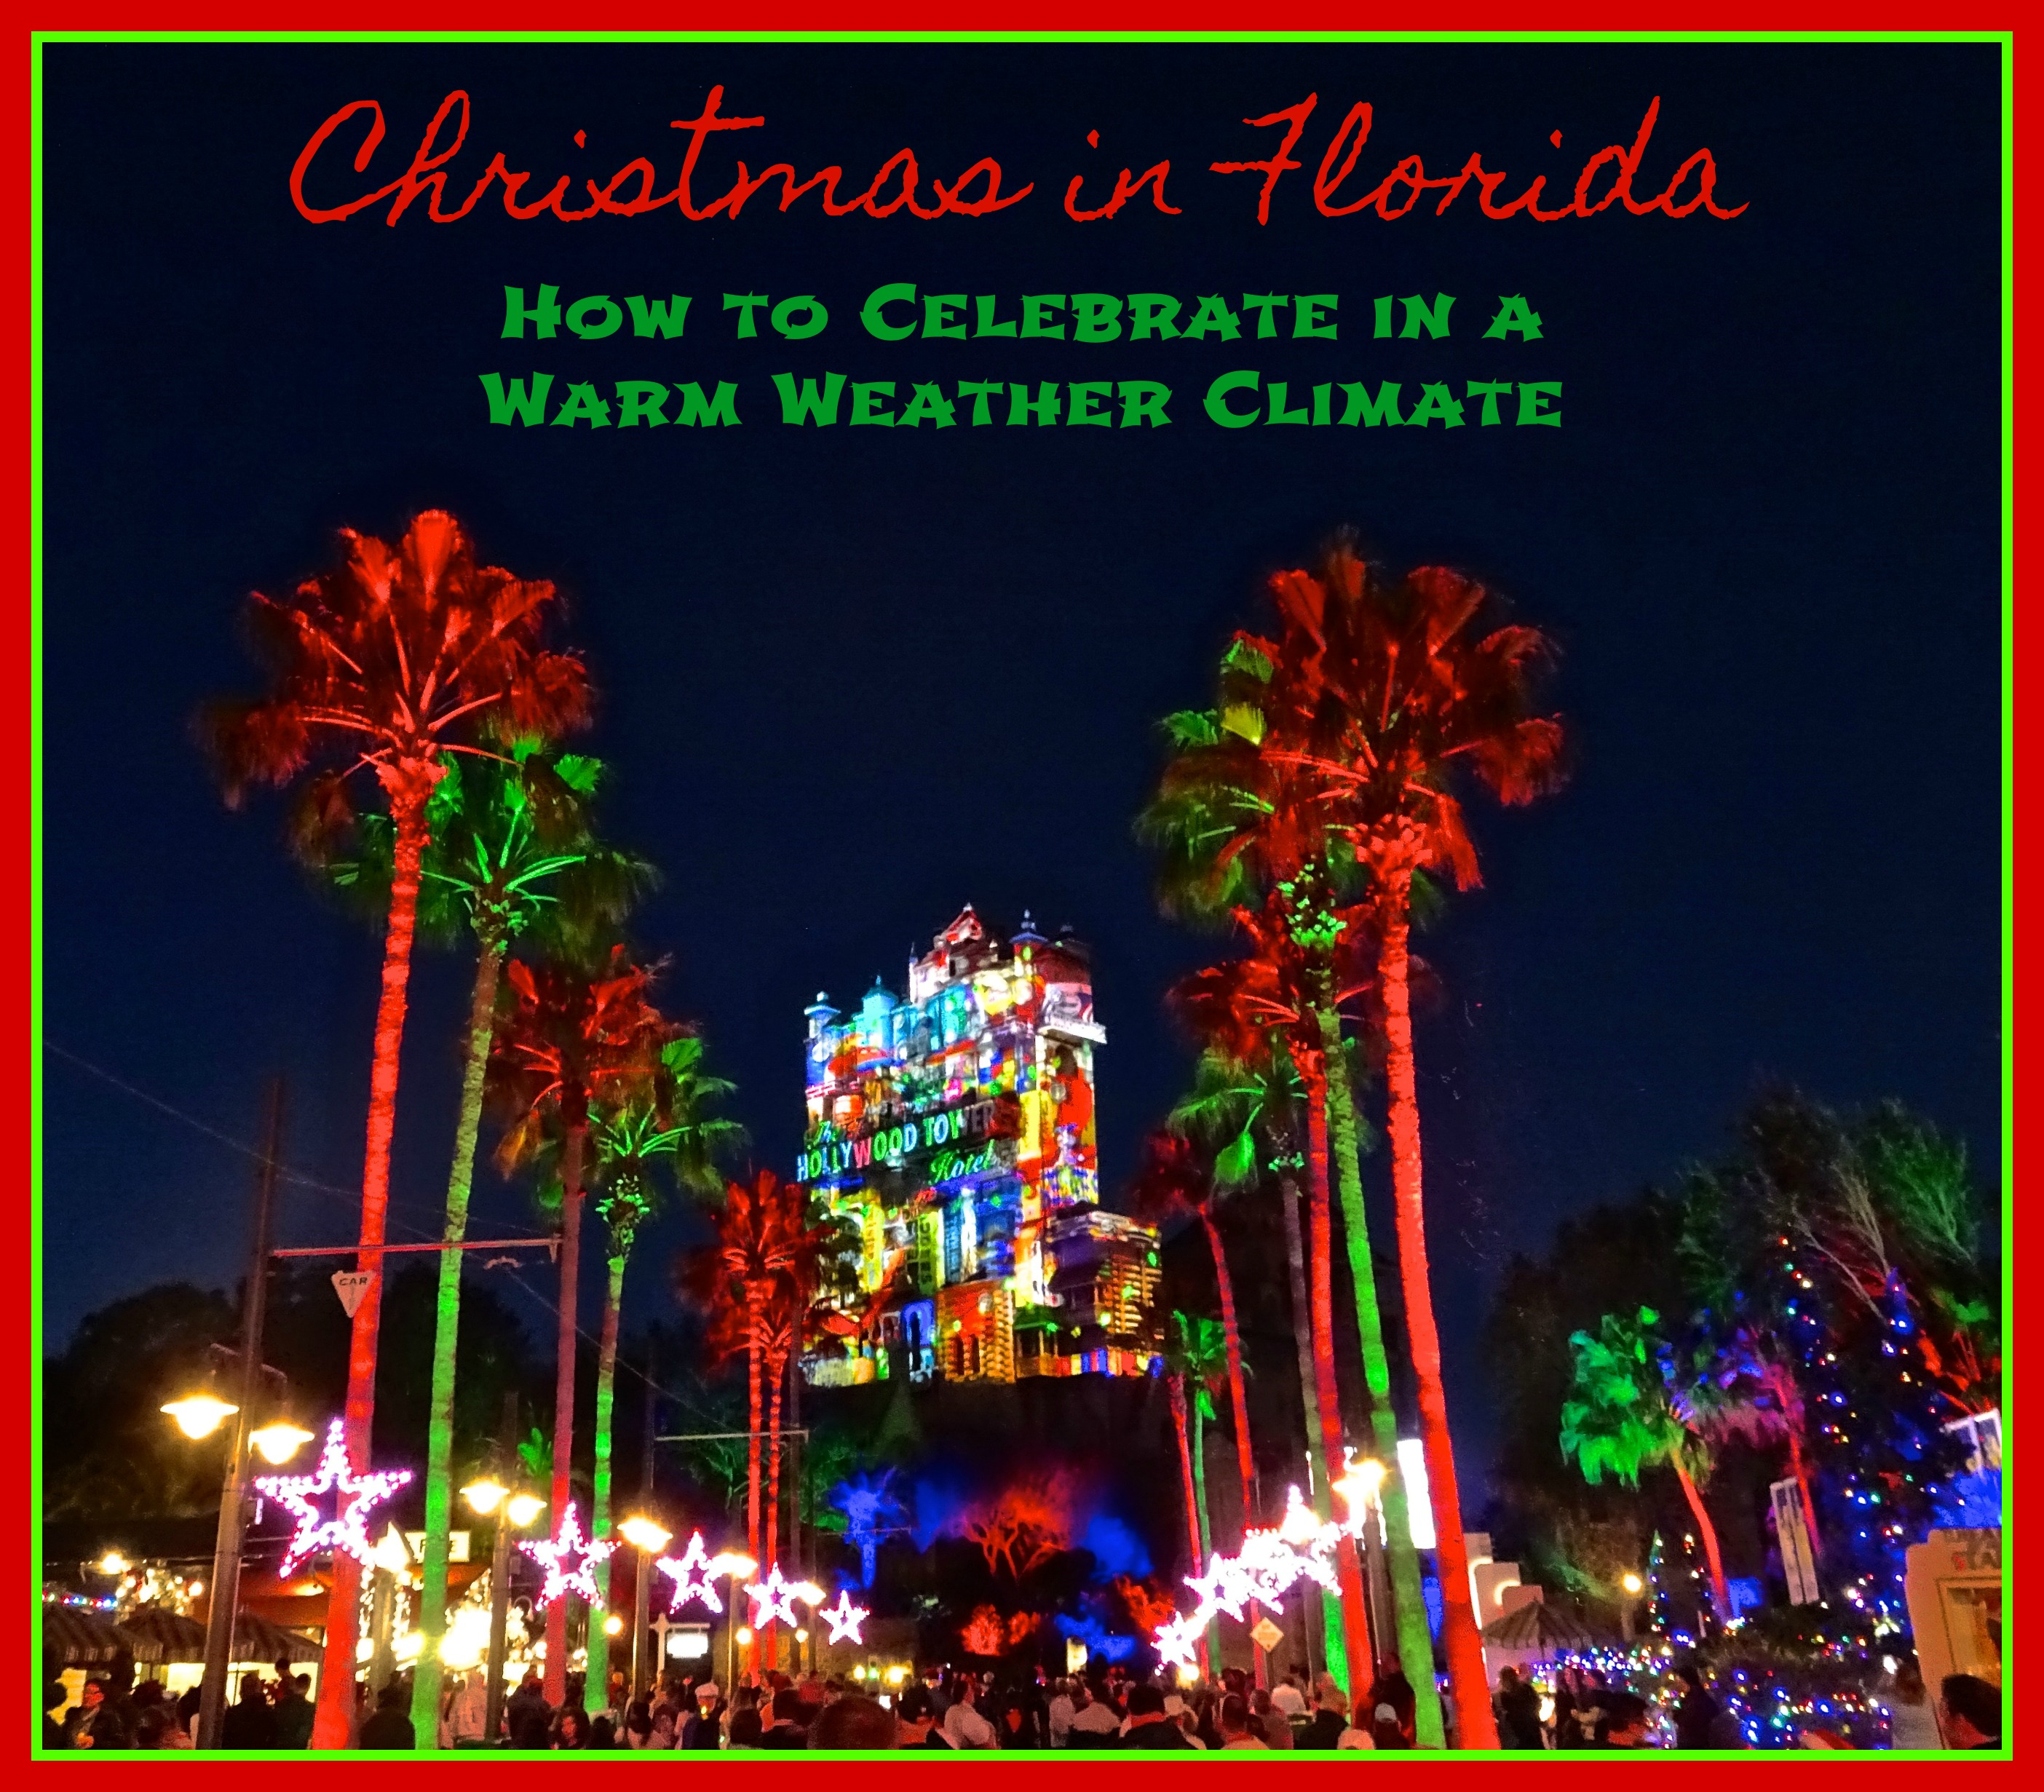 Christmas In Florida Images.Christmas In Florida How To Celebrate In A Warm Weather